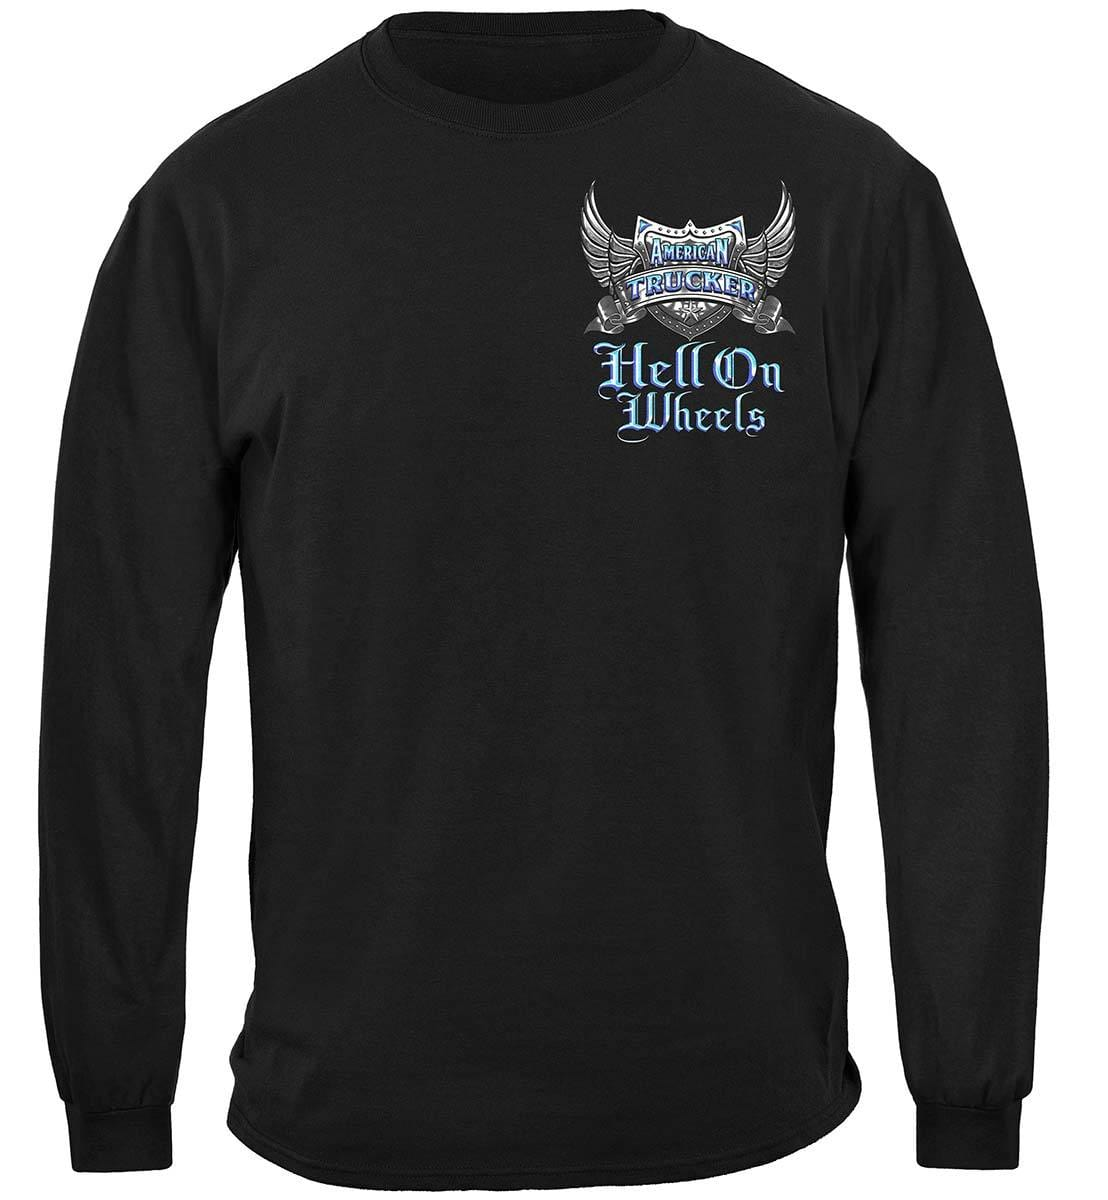 Trucker Hell On Wheels Premium Hooded Sweat Shirt